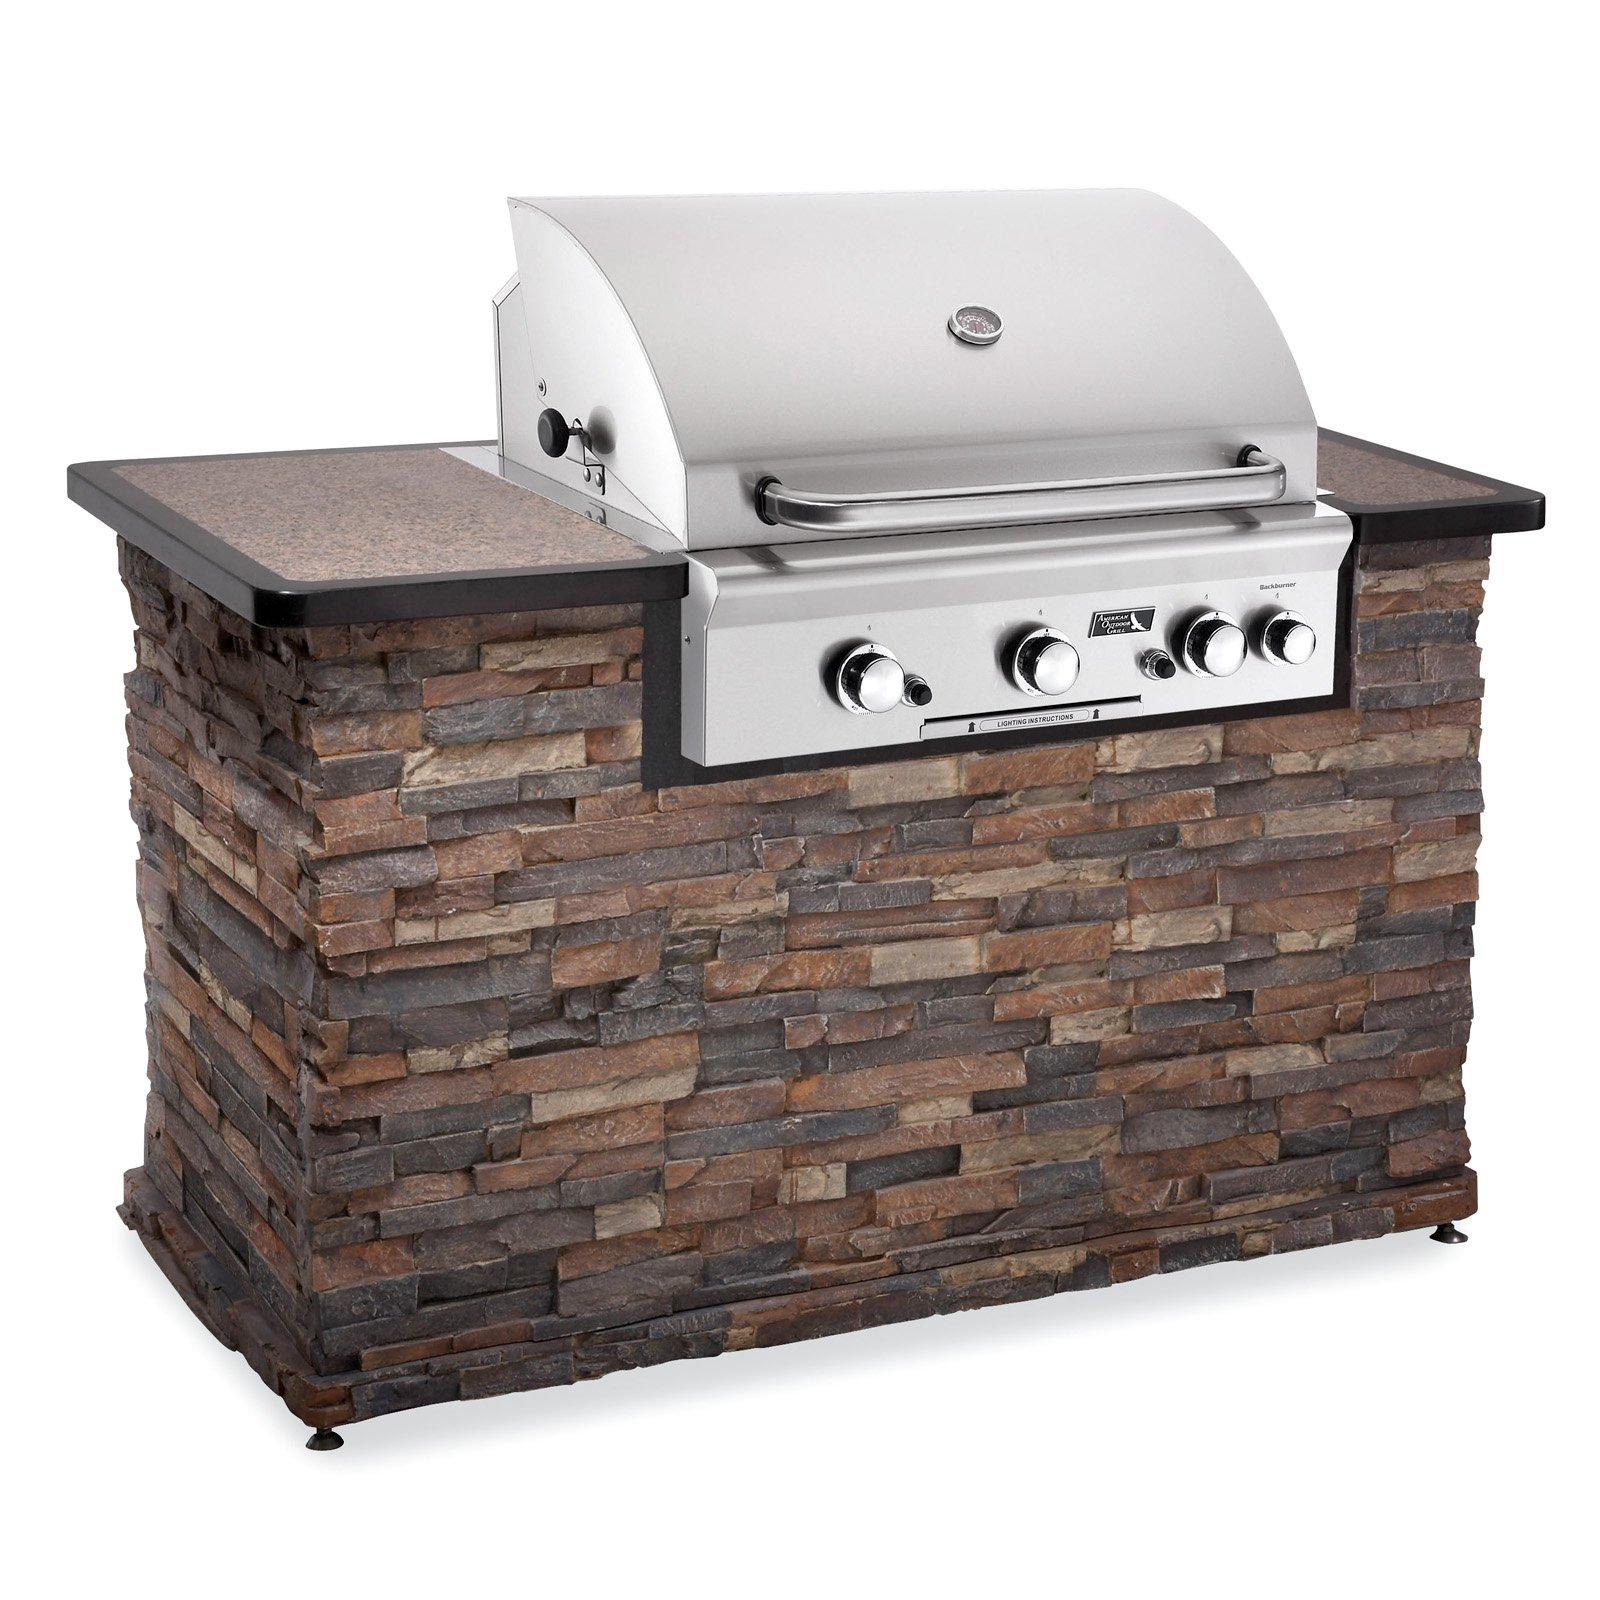 American Outdoor Grill 30 In 3 Burner Built Gas With Optional Liner